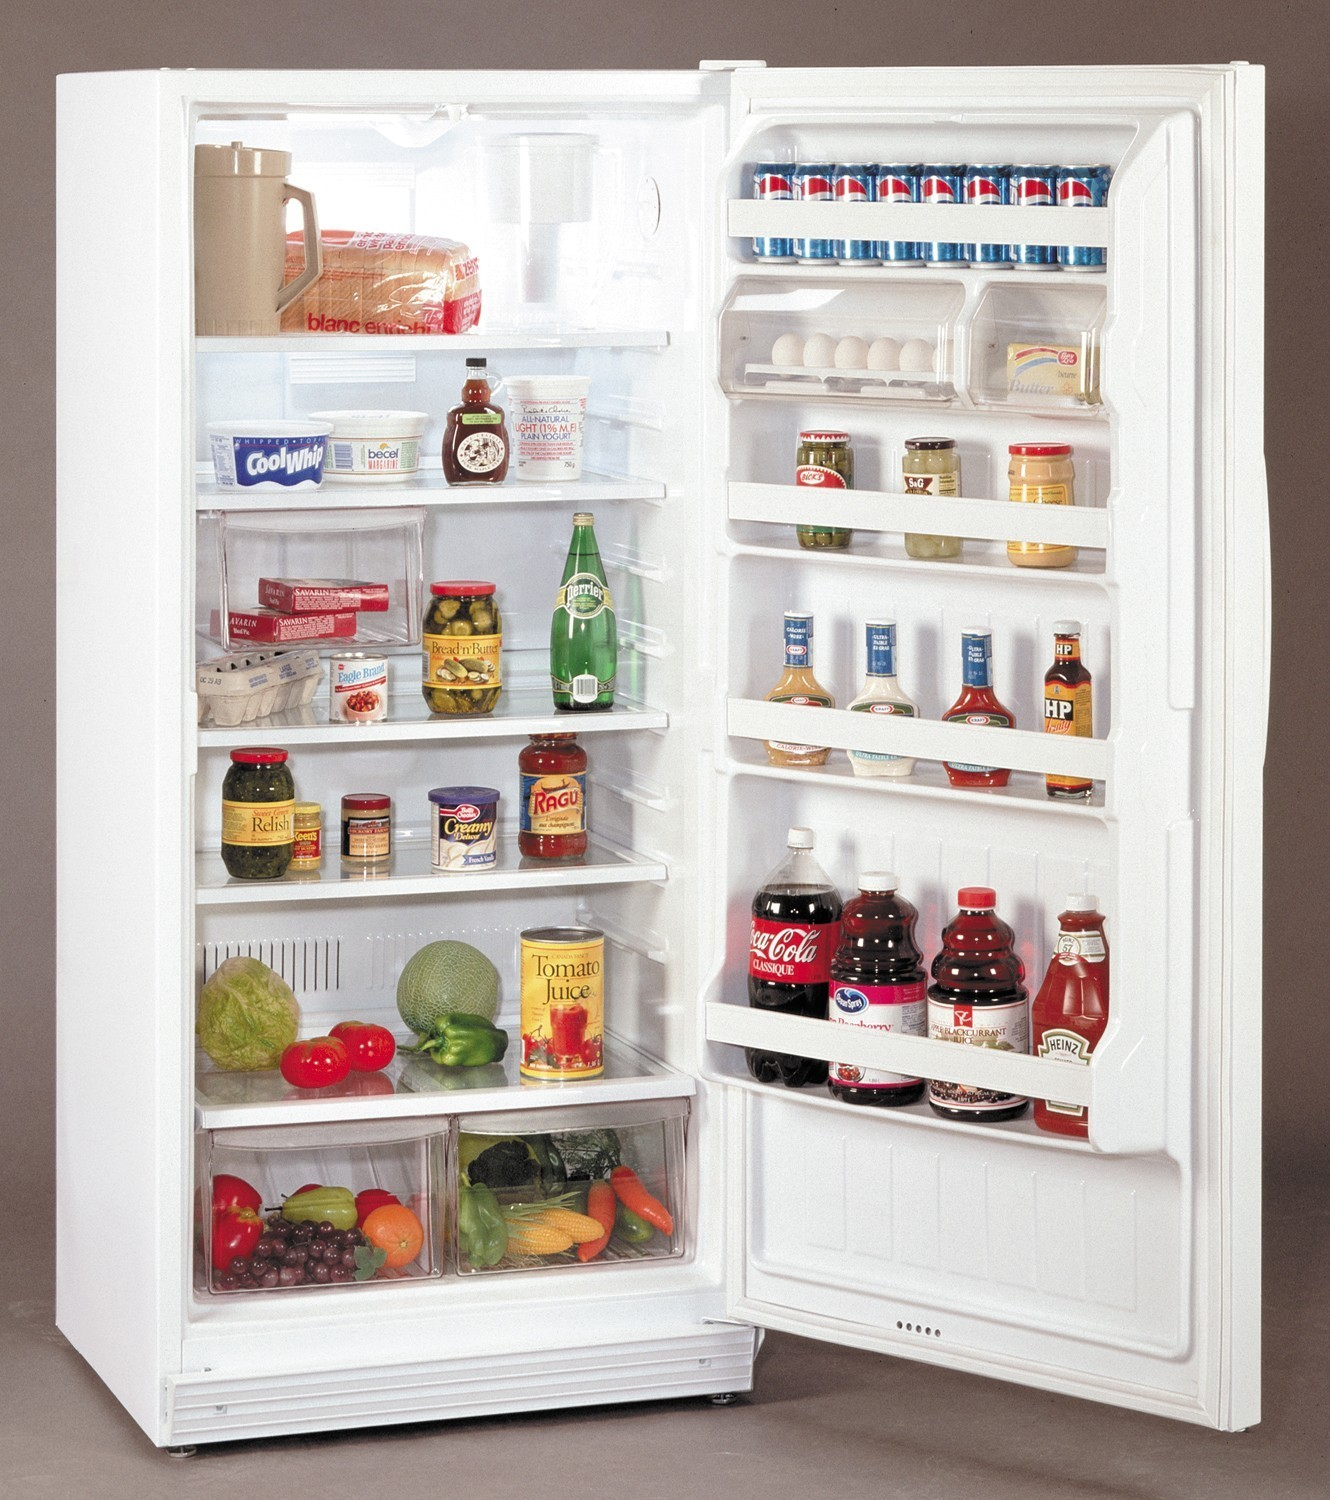 Perfect Picture Of Recalled Refrigerator